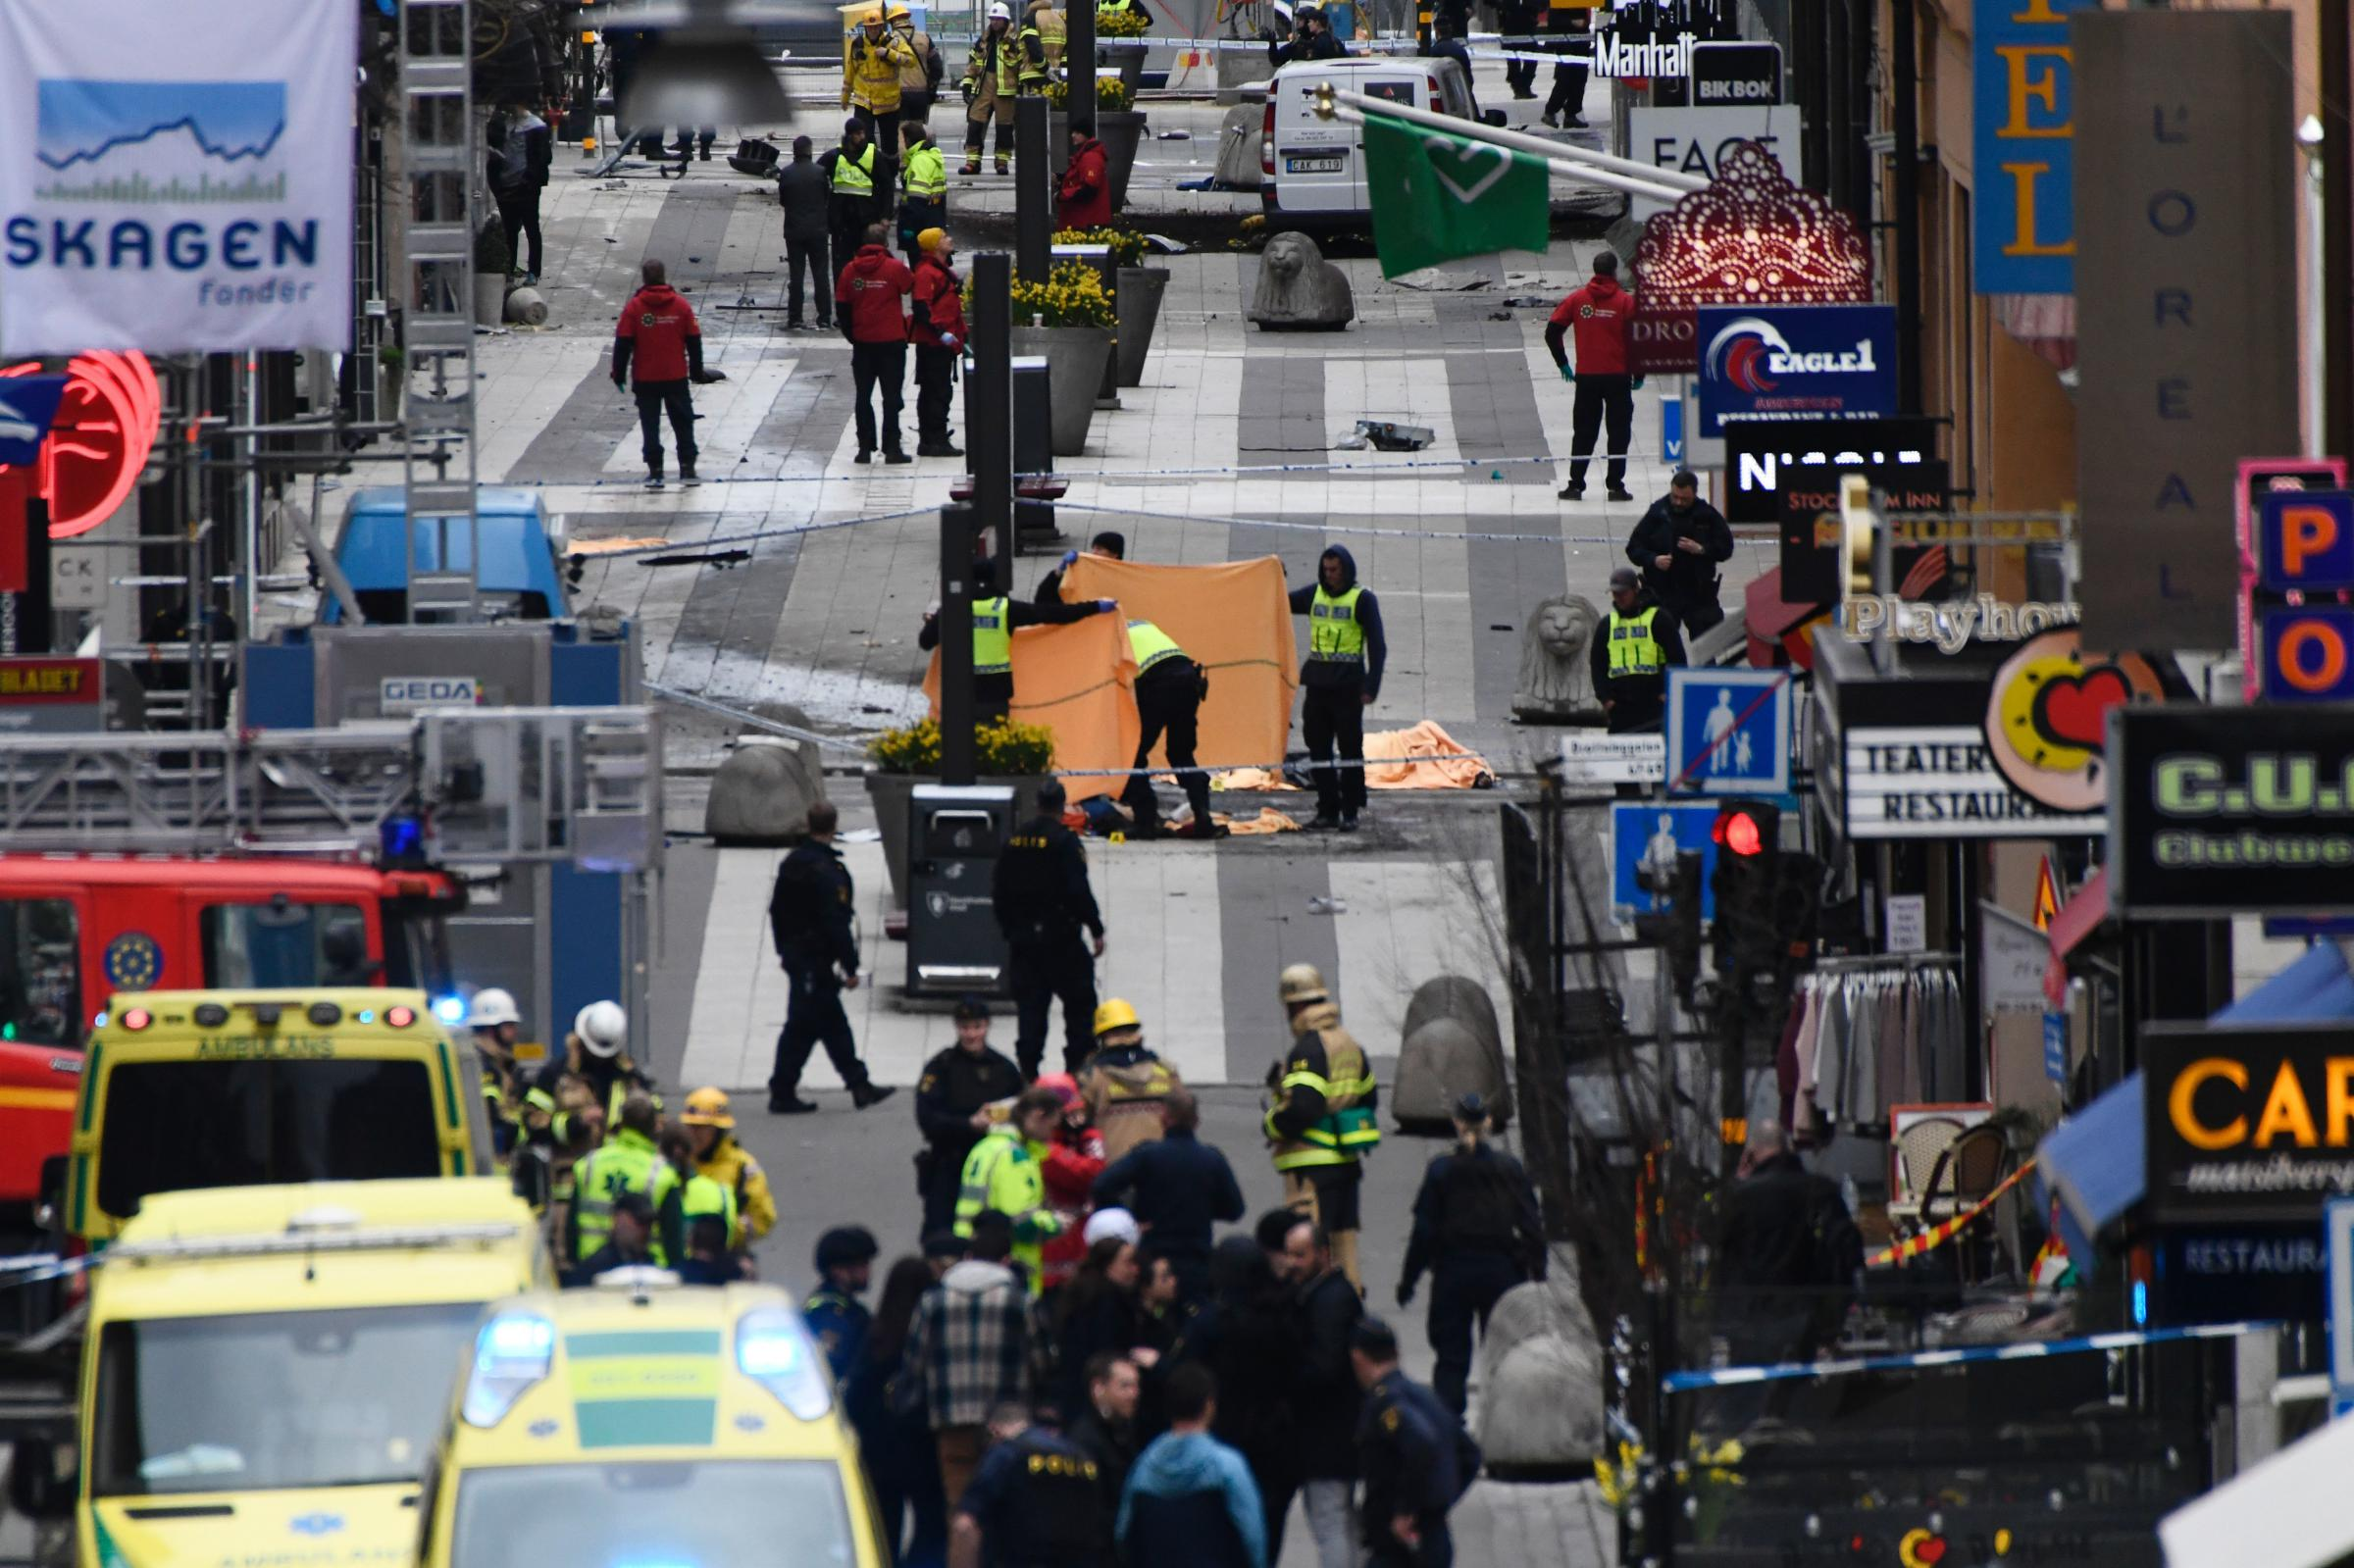 Sweden mulls 'open door' policies after truck massacre